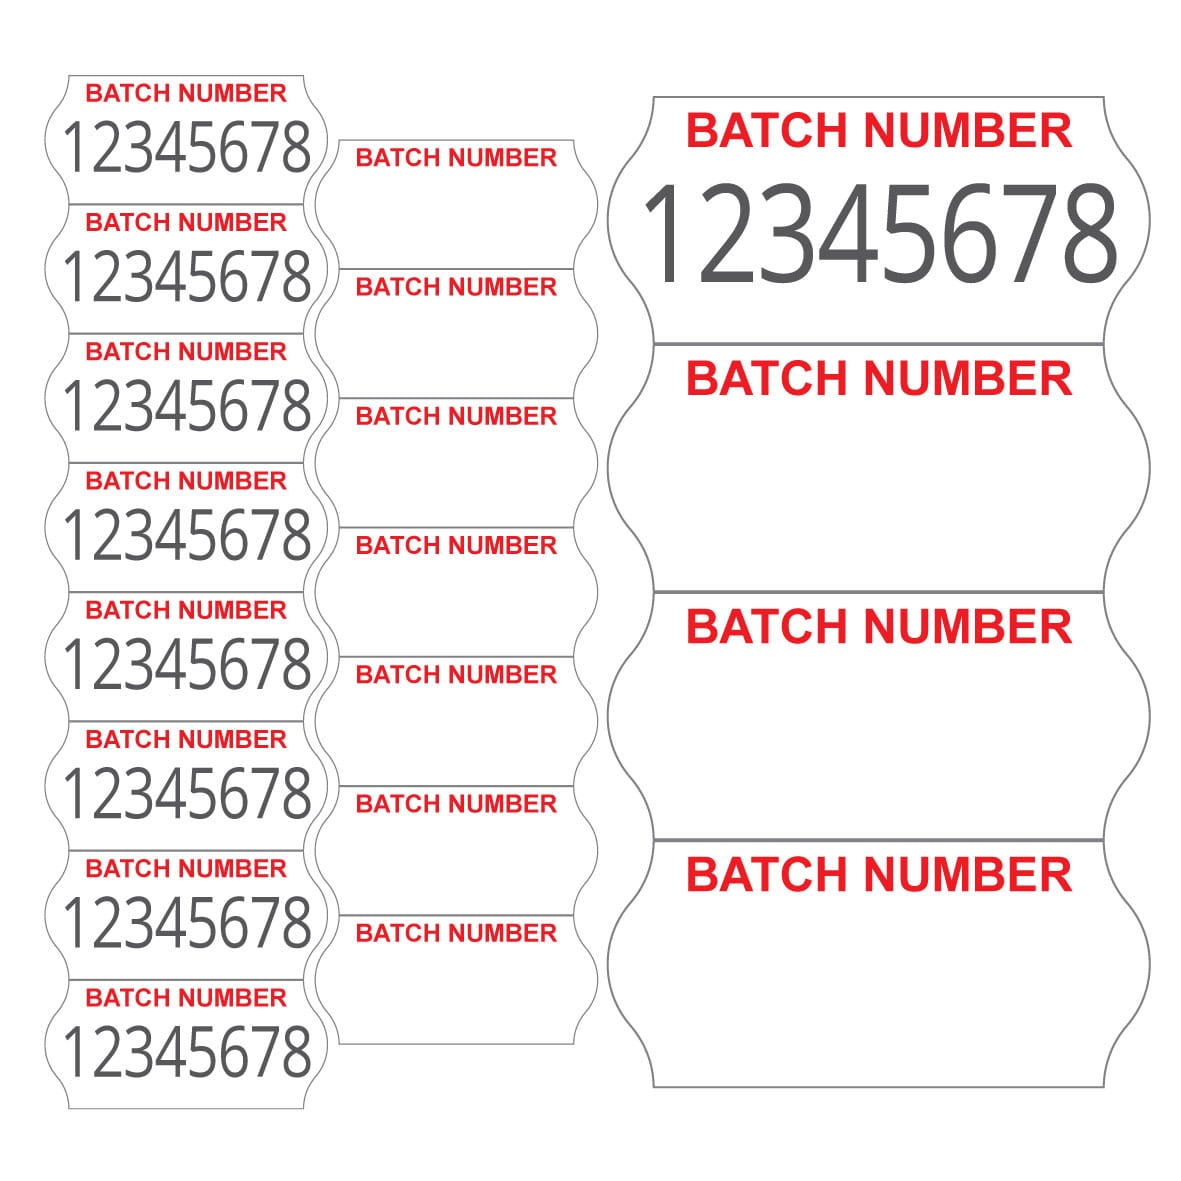 Image of CT4 (26mm x 12mm) Batch Number Labels Product Image